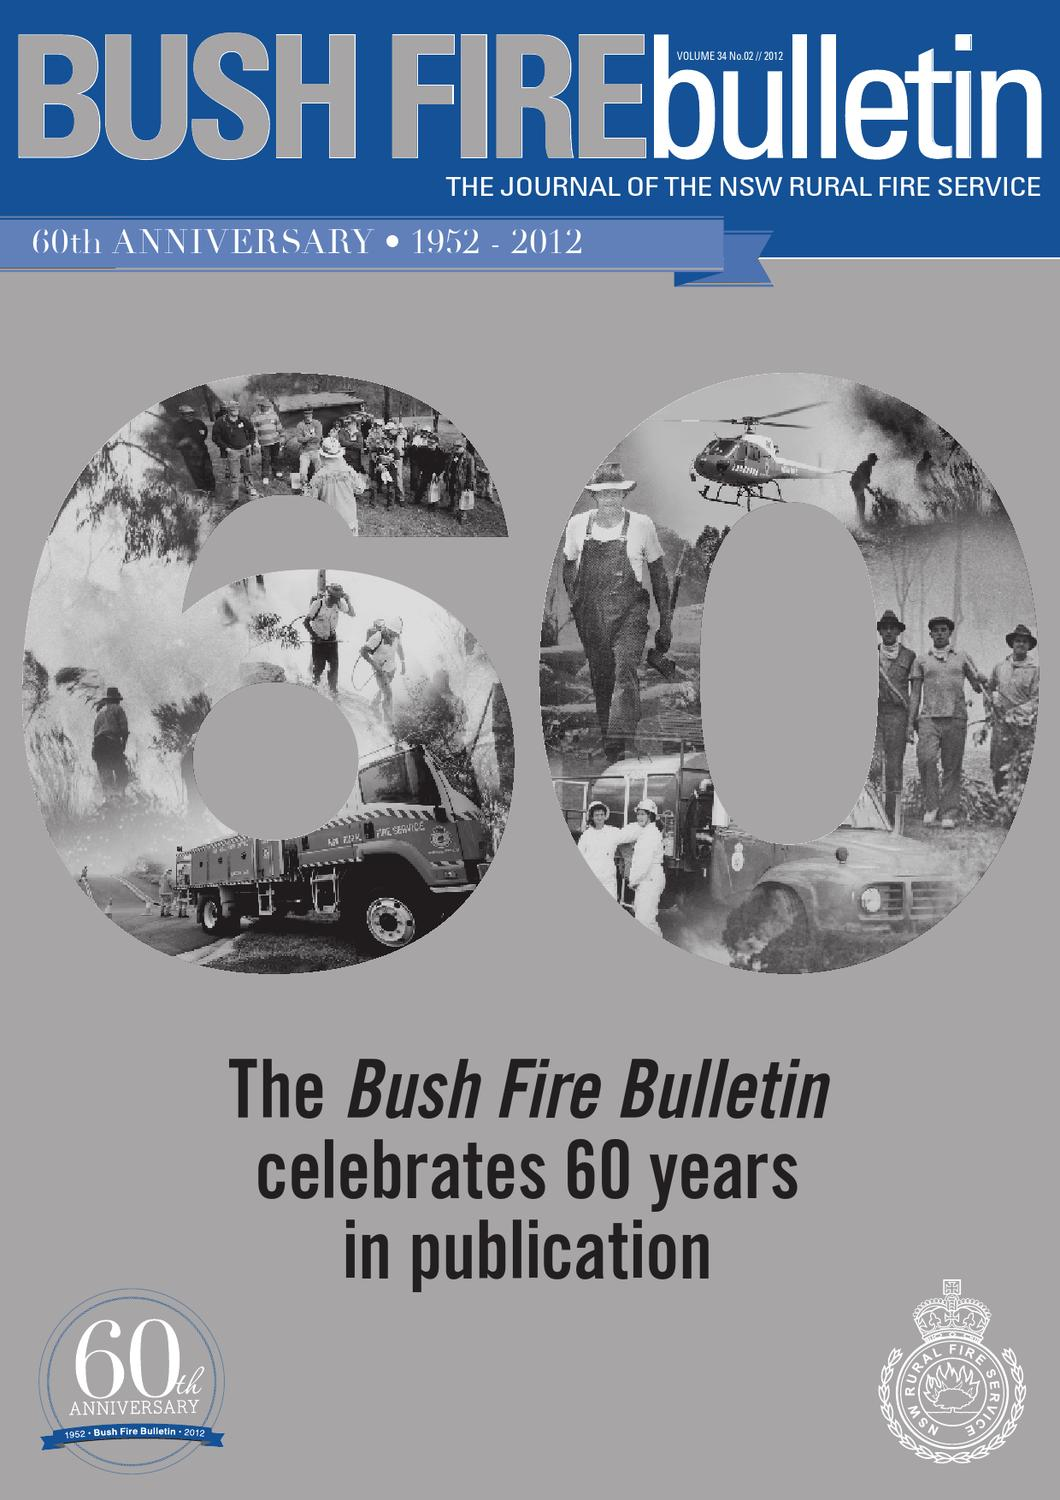 Bush Fire Bulletin By Nsw Rural Service Issuu Elenco Snap Circuits Light The Granville Island Toy Company